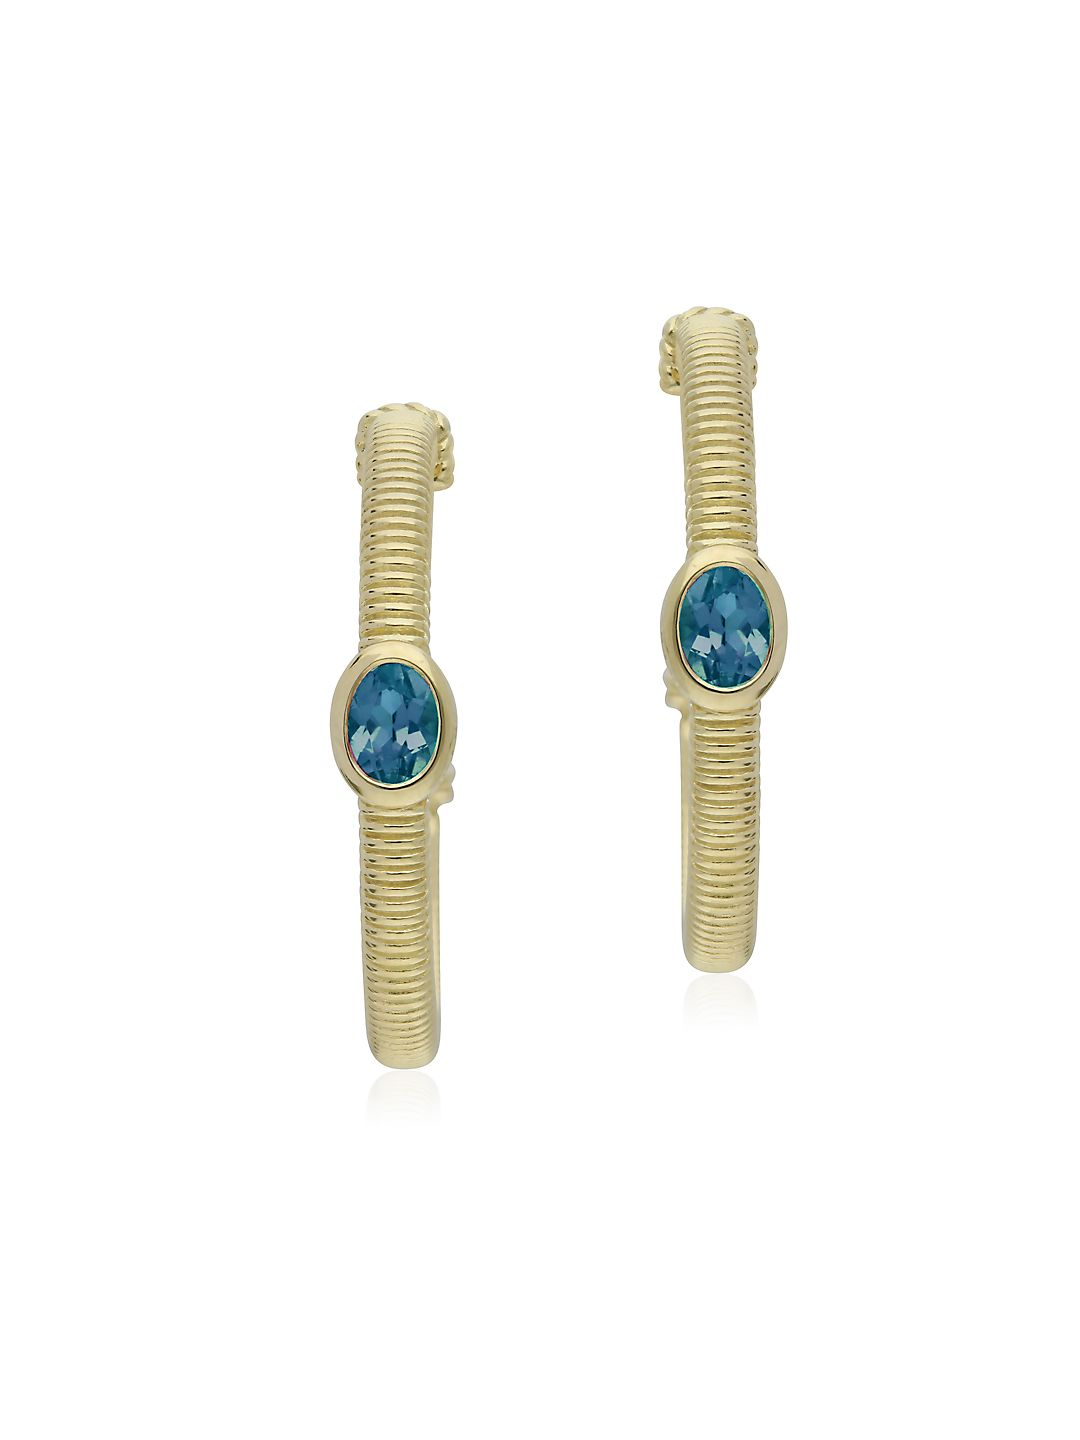 La Petite 14K Yellow Gold & Swiss Blue Topaz Hoop Earrings